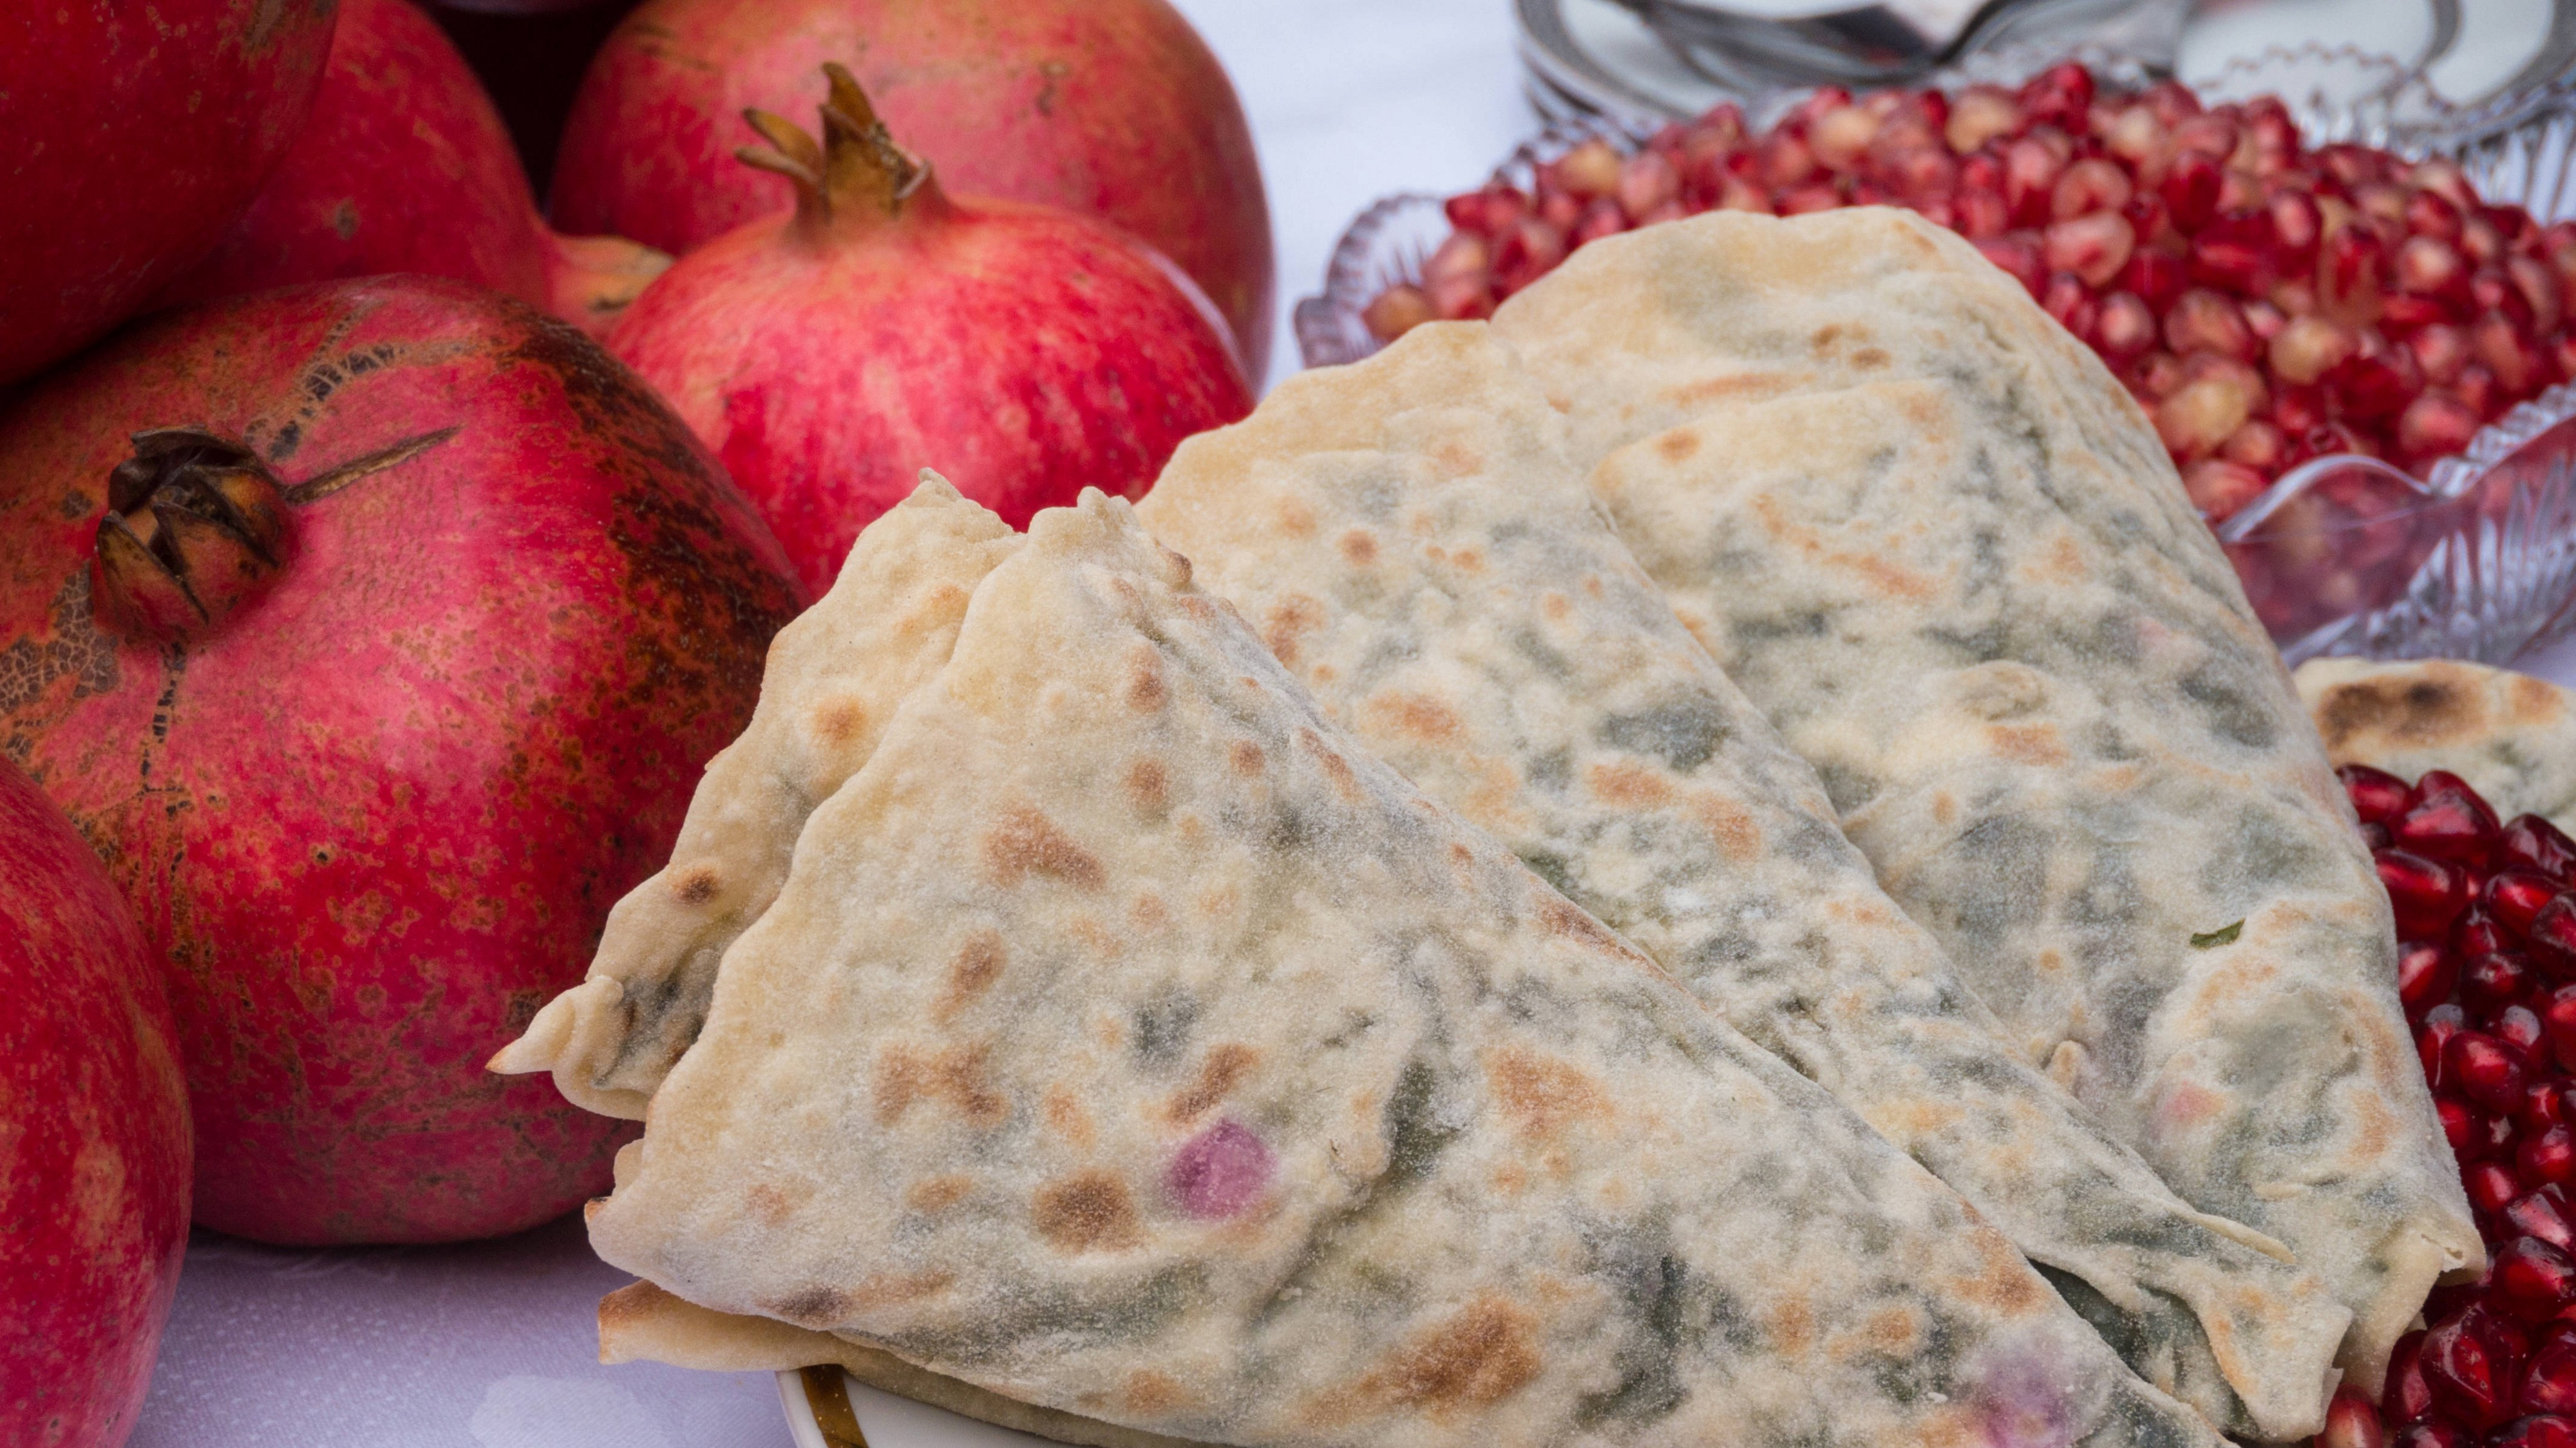 Qutab (pancakes) with nar (pomegranate), served at the annual Nar Festival in Göychay, Azerbaijan